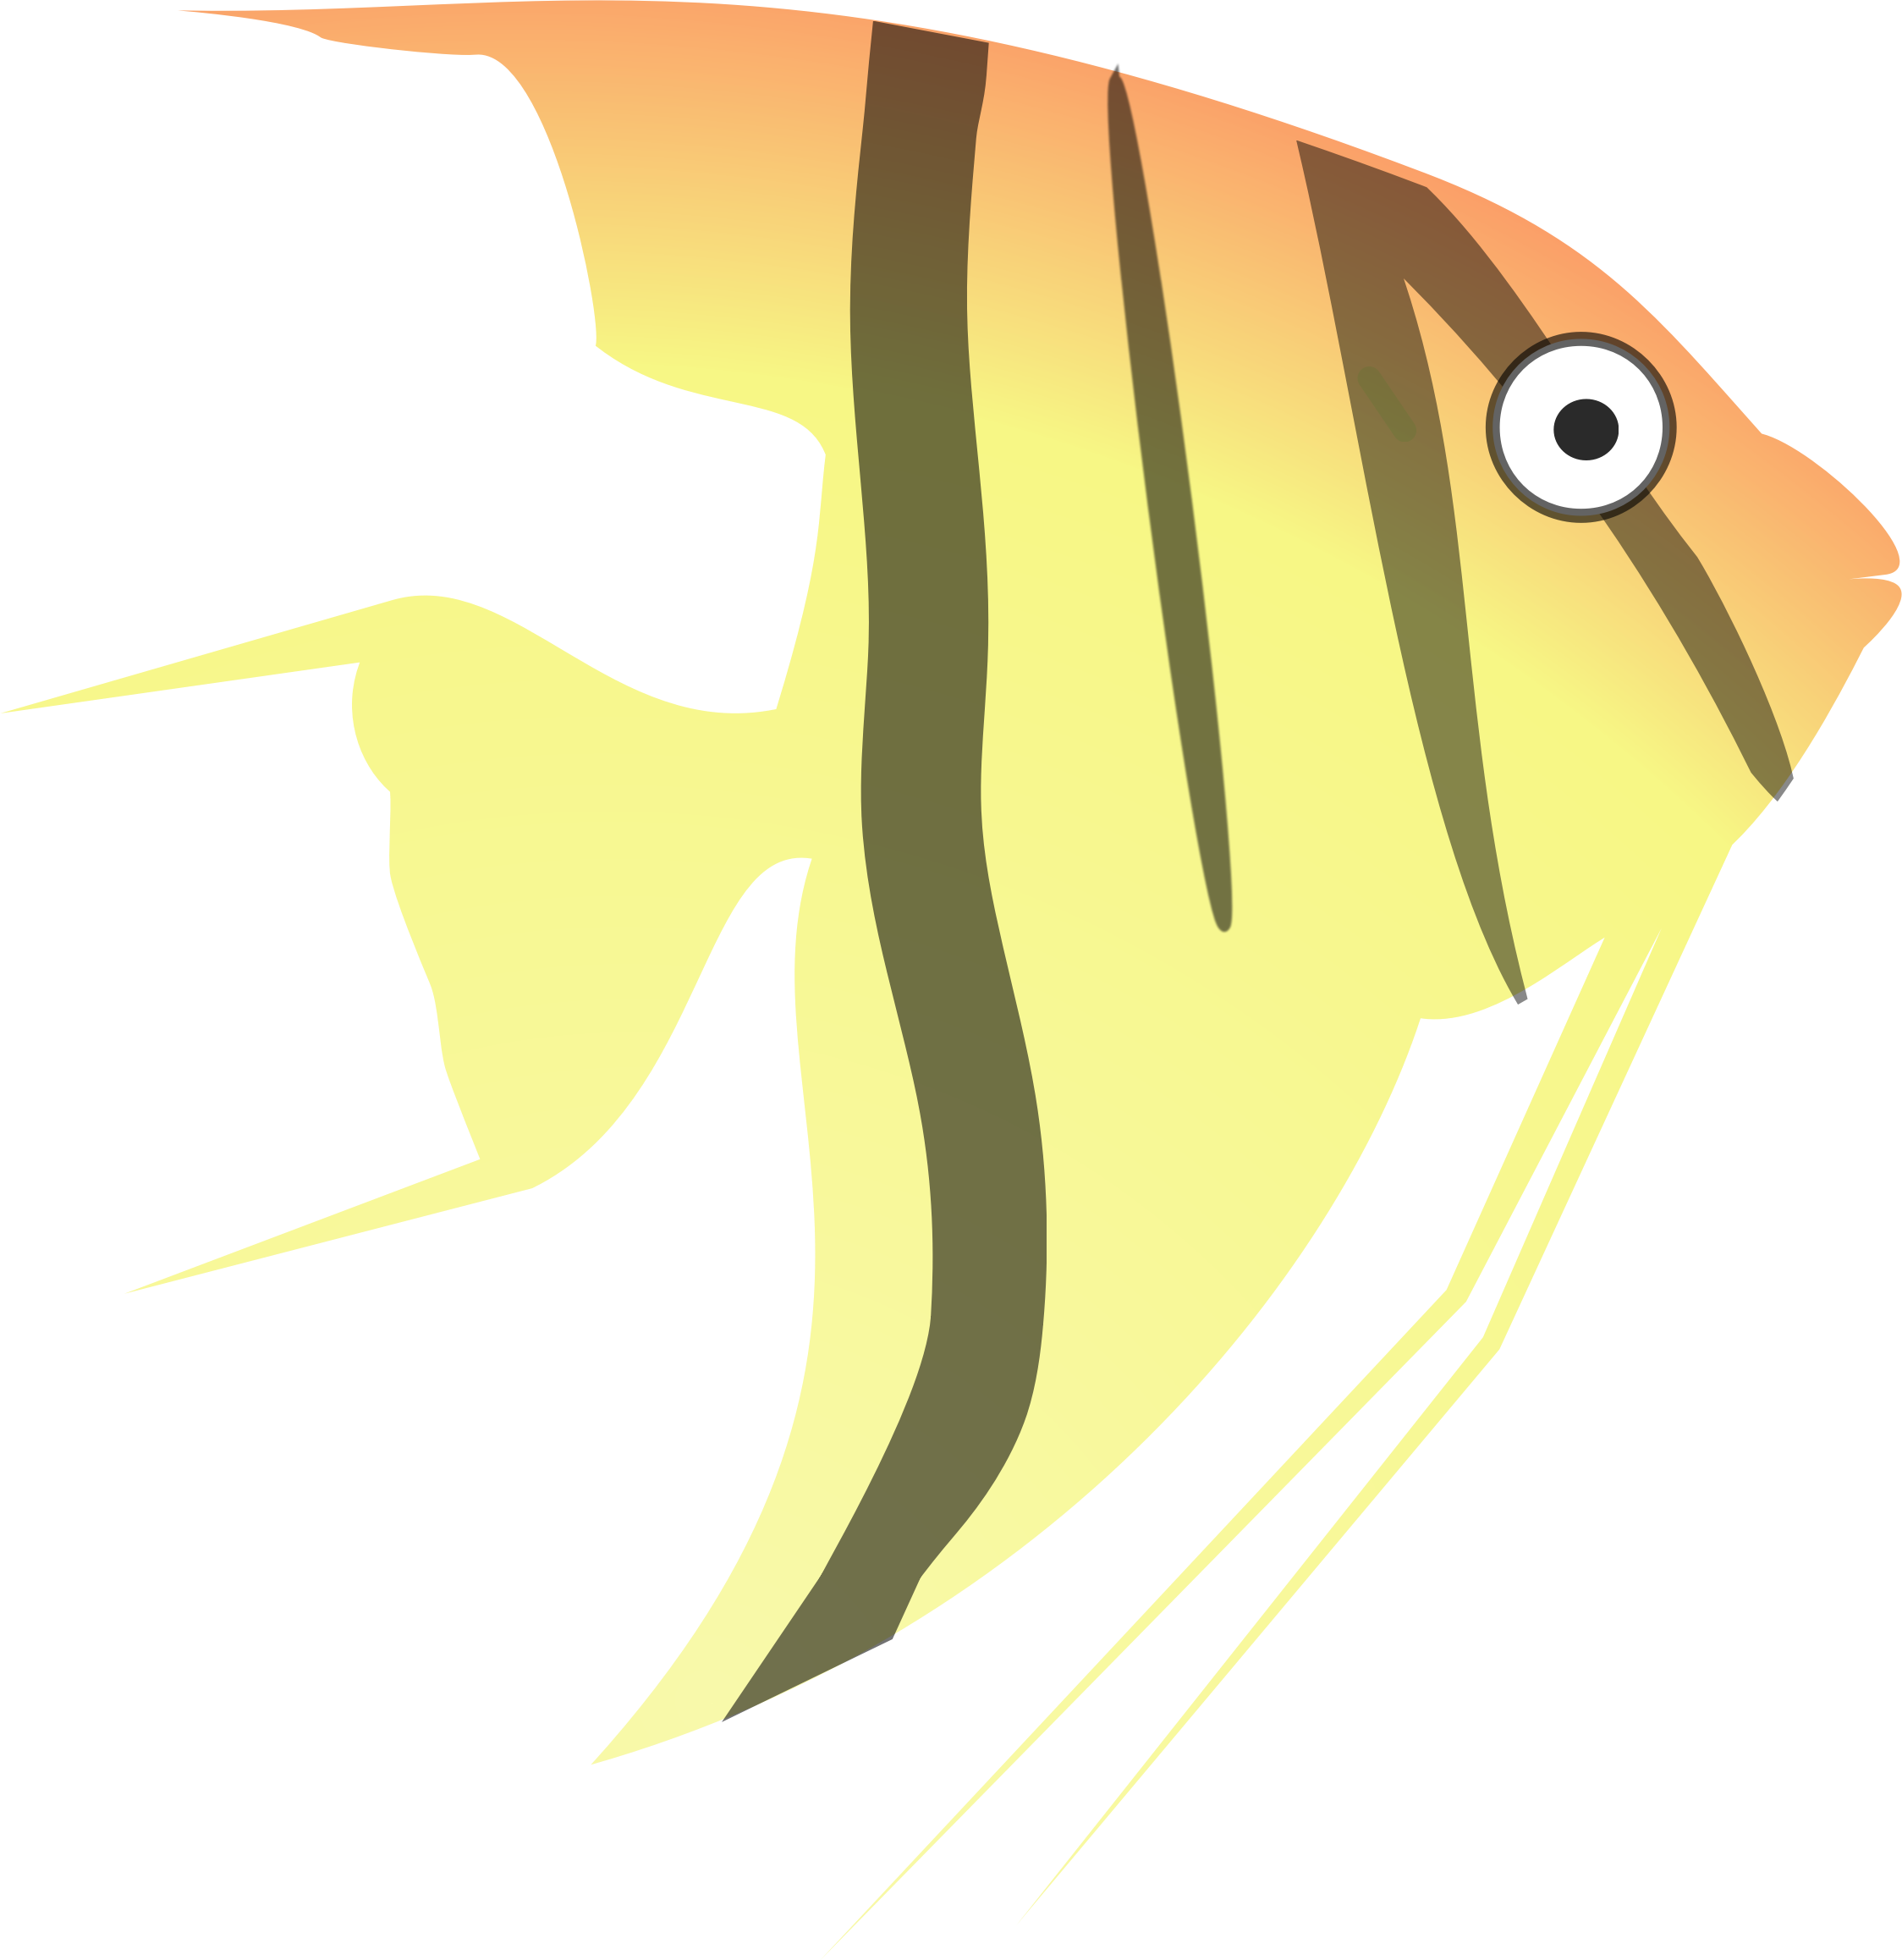 Clipart cartoon character of fish clipart transparent cartoon angel fish Icons PNG - Free PNG and Icons Downloads clipart transparent